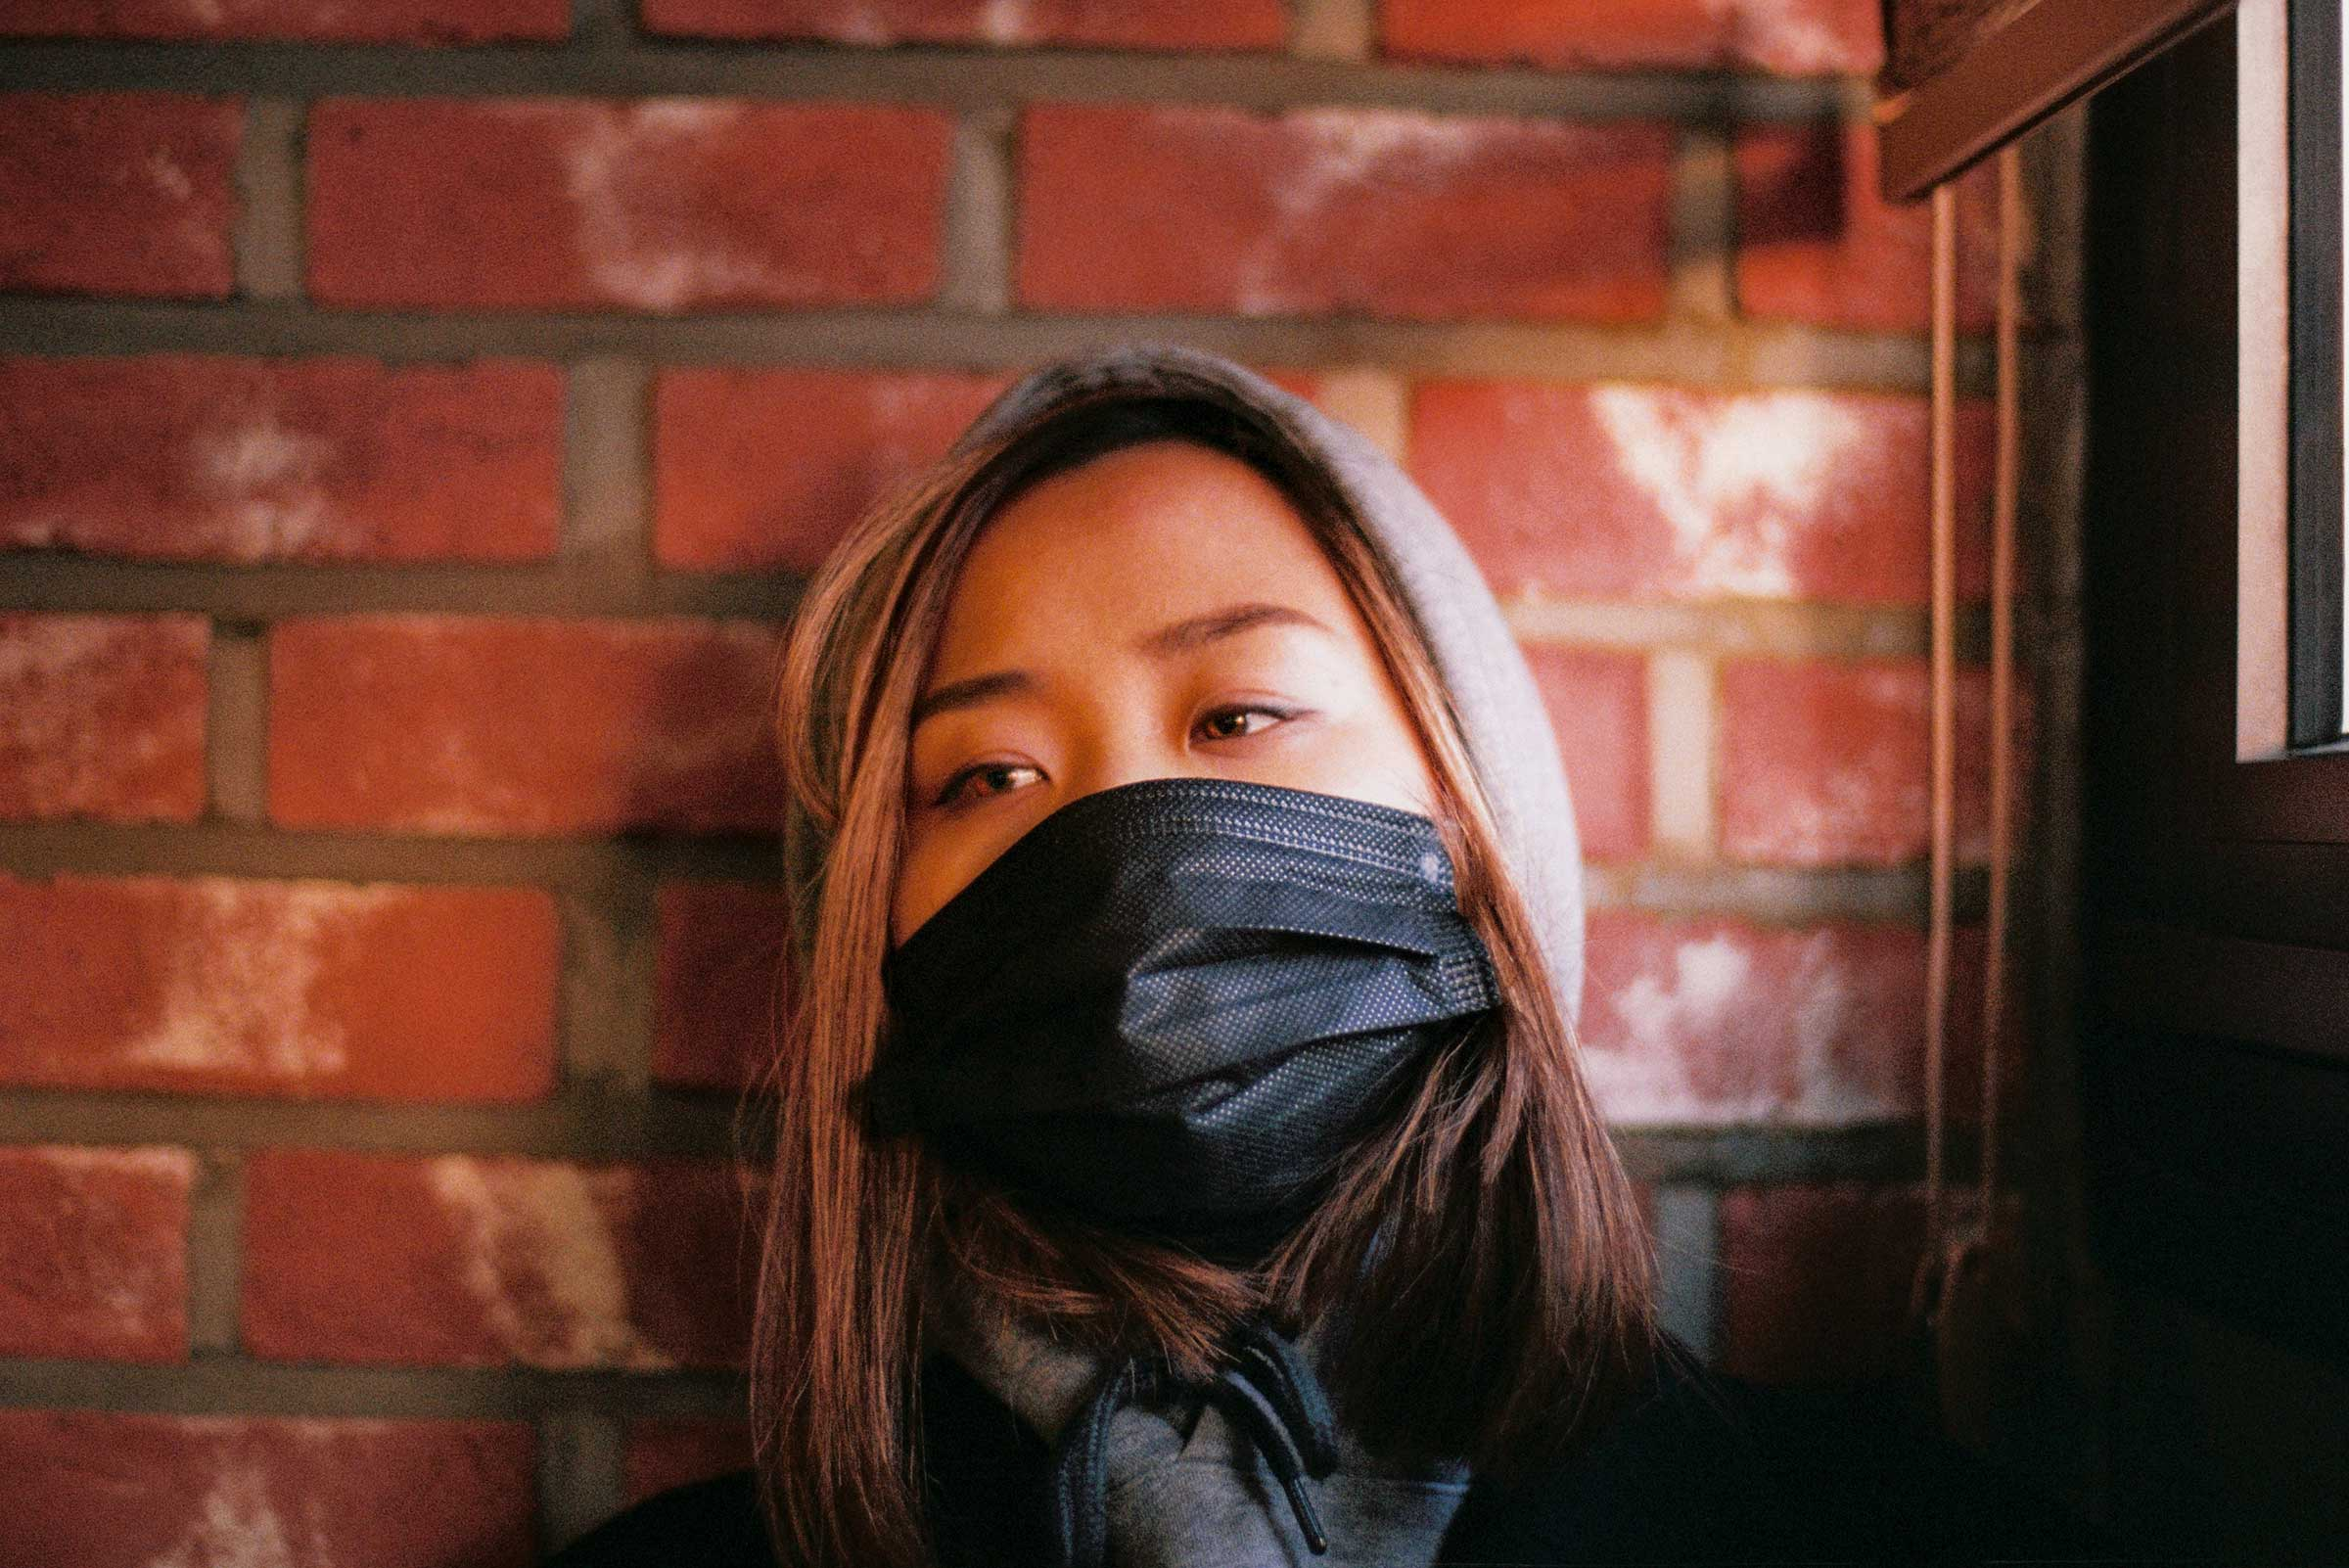 an Asian woman with shoulder-length blond hair is wearing a black mask across her face as she stares into space